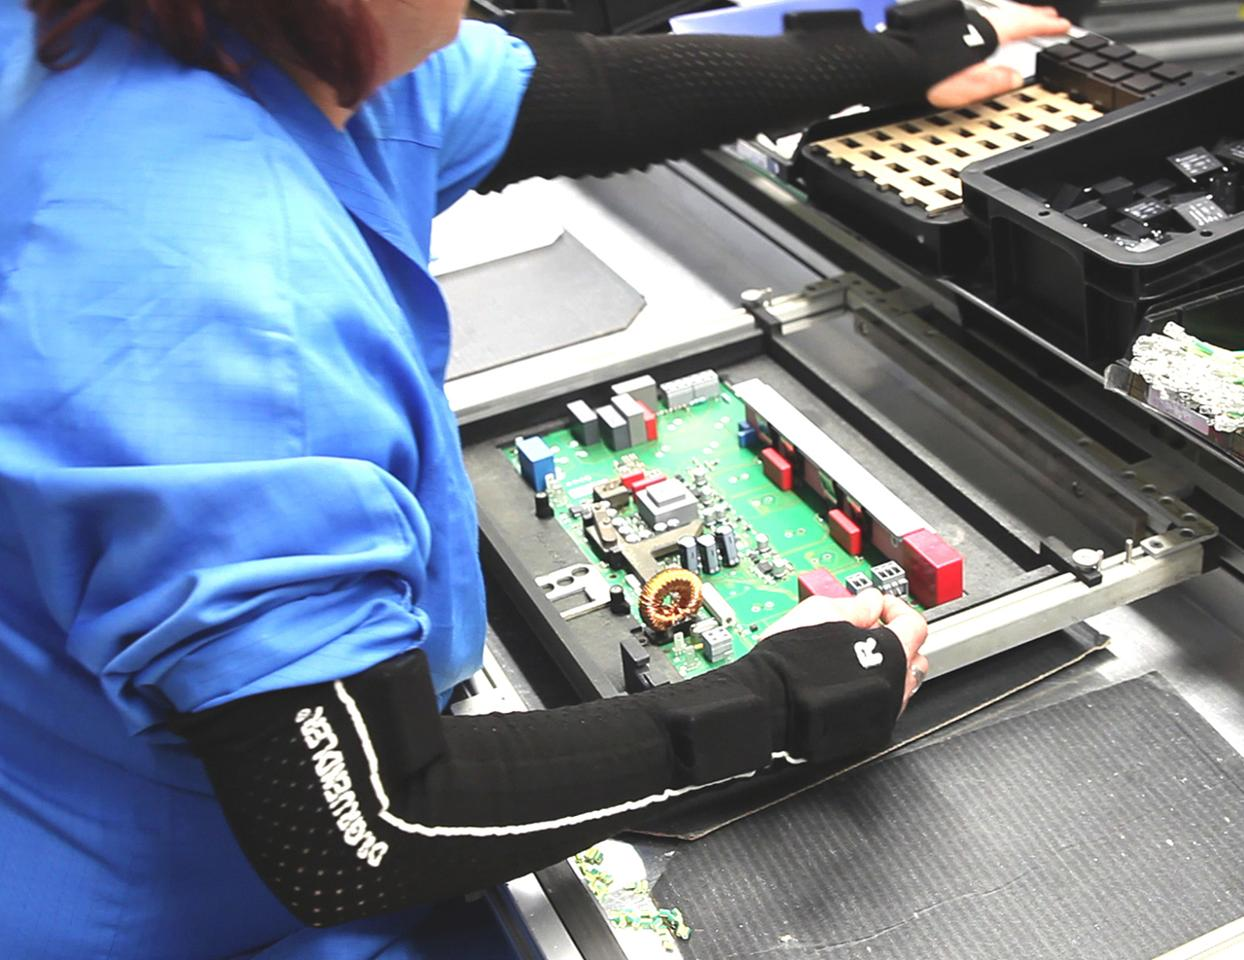 Sleeves equipped with sensors have been developed to time the actions of factory workers, in order to increase efficiency